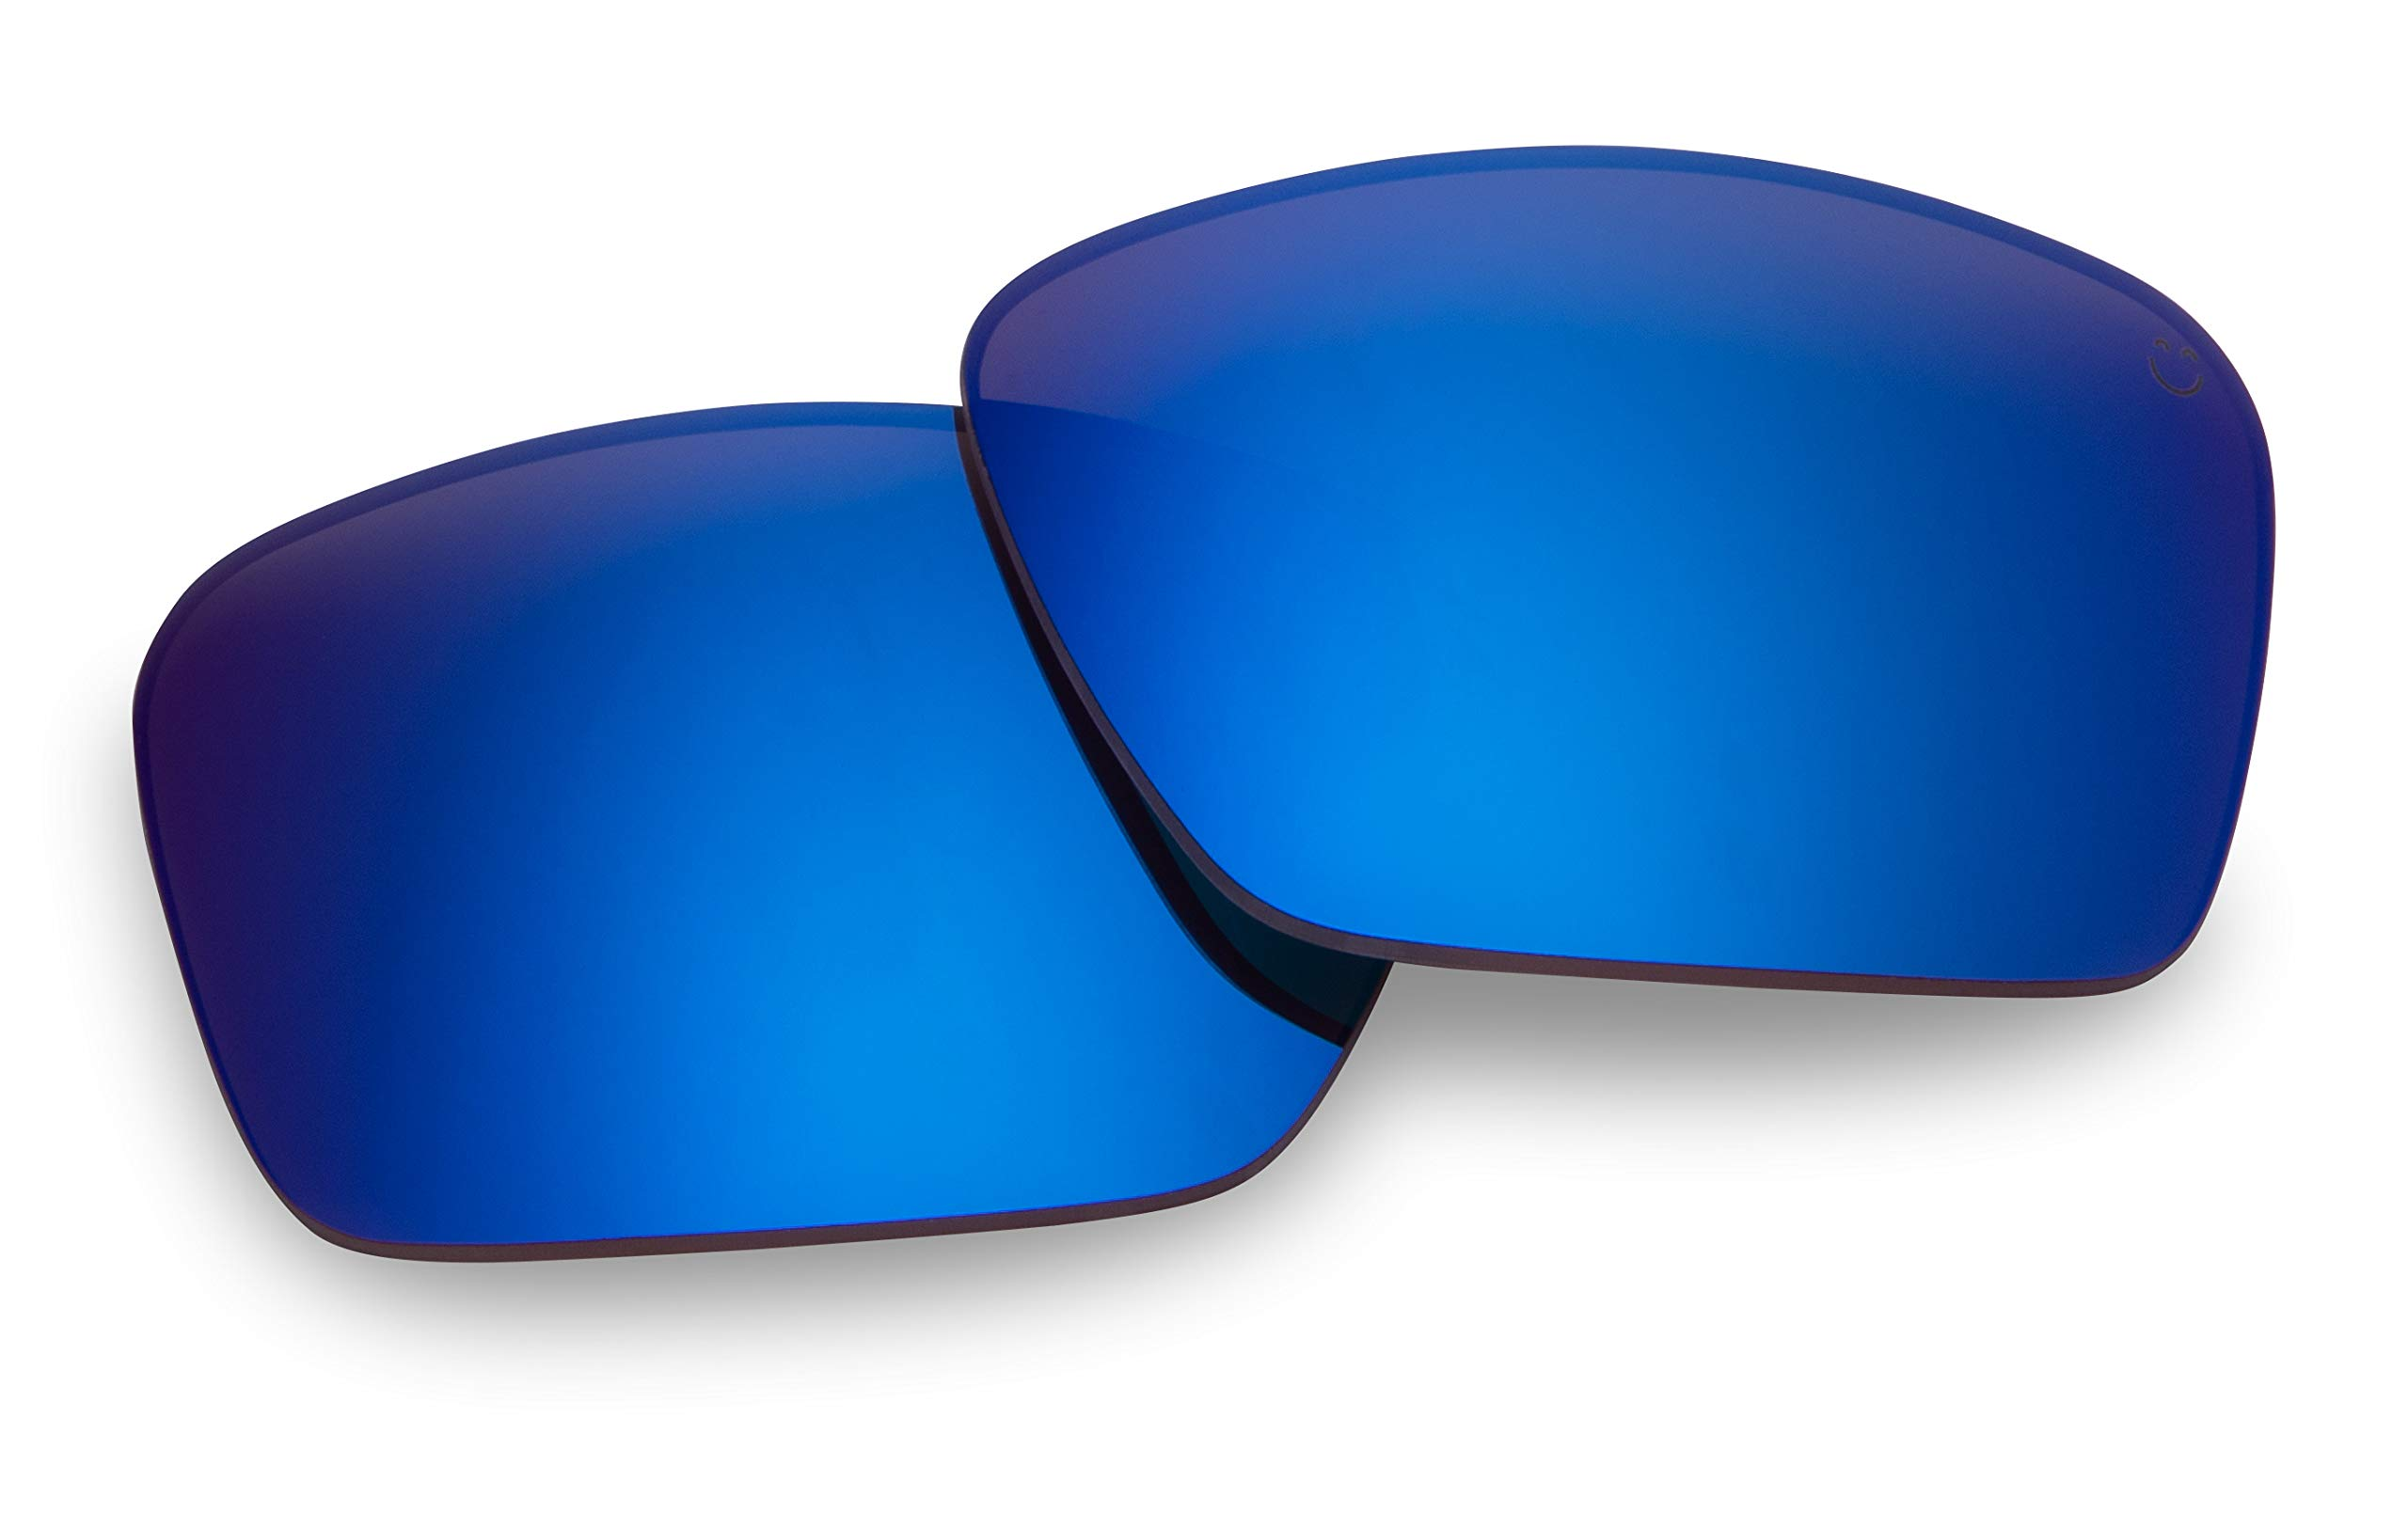 Spy Optic OFFICIAL Replacement Lenses for SPY SUNGLASSES (FRAZIER REPLACEMENT LENSES-HAPPY BRONZE POLAR W/DARK BLUE SPECTRA, FRAZIER REPLACEMENT LENSES-HAPPY BRONZE POLAR W/DARK BLUE SPECTRA)